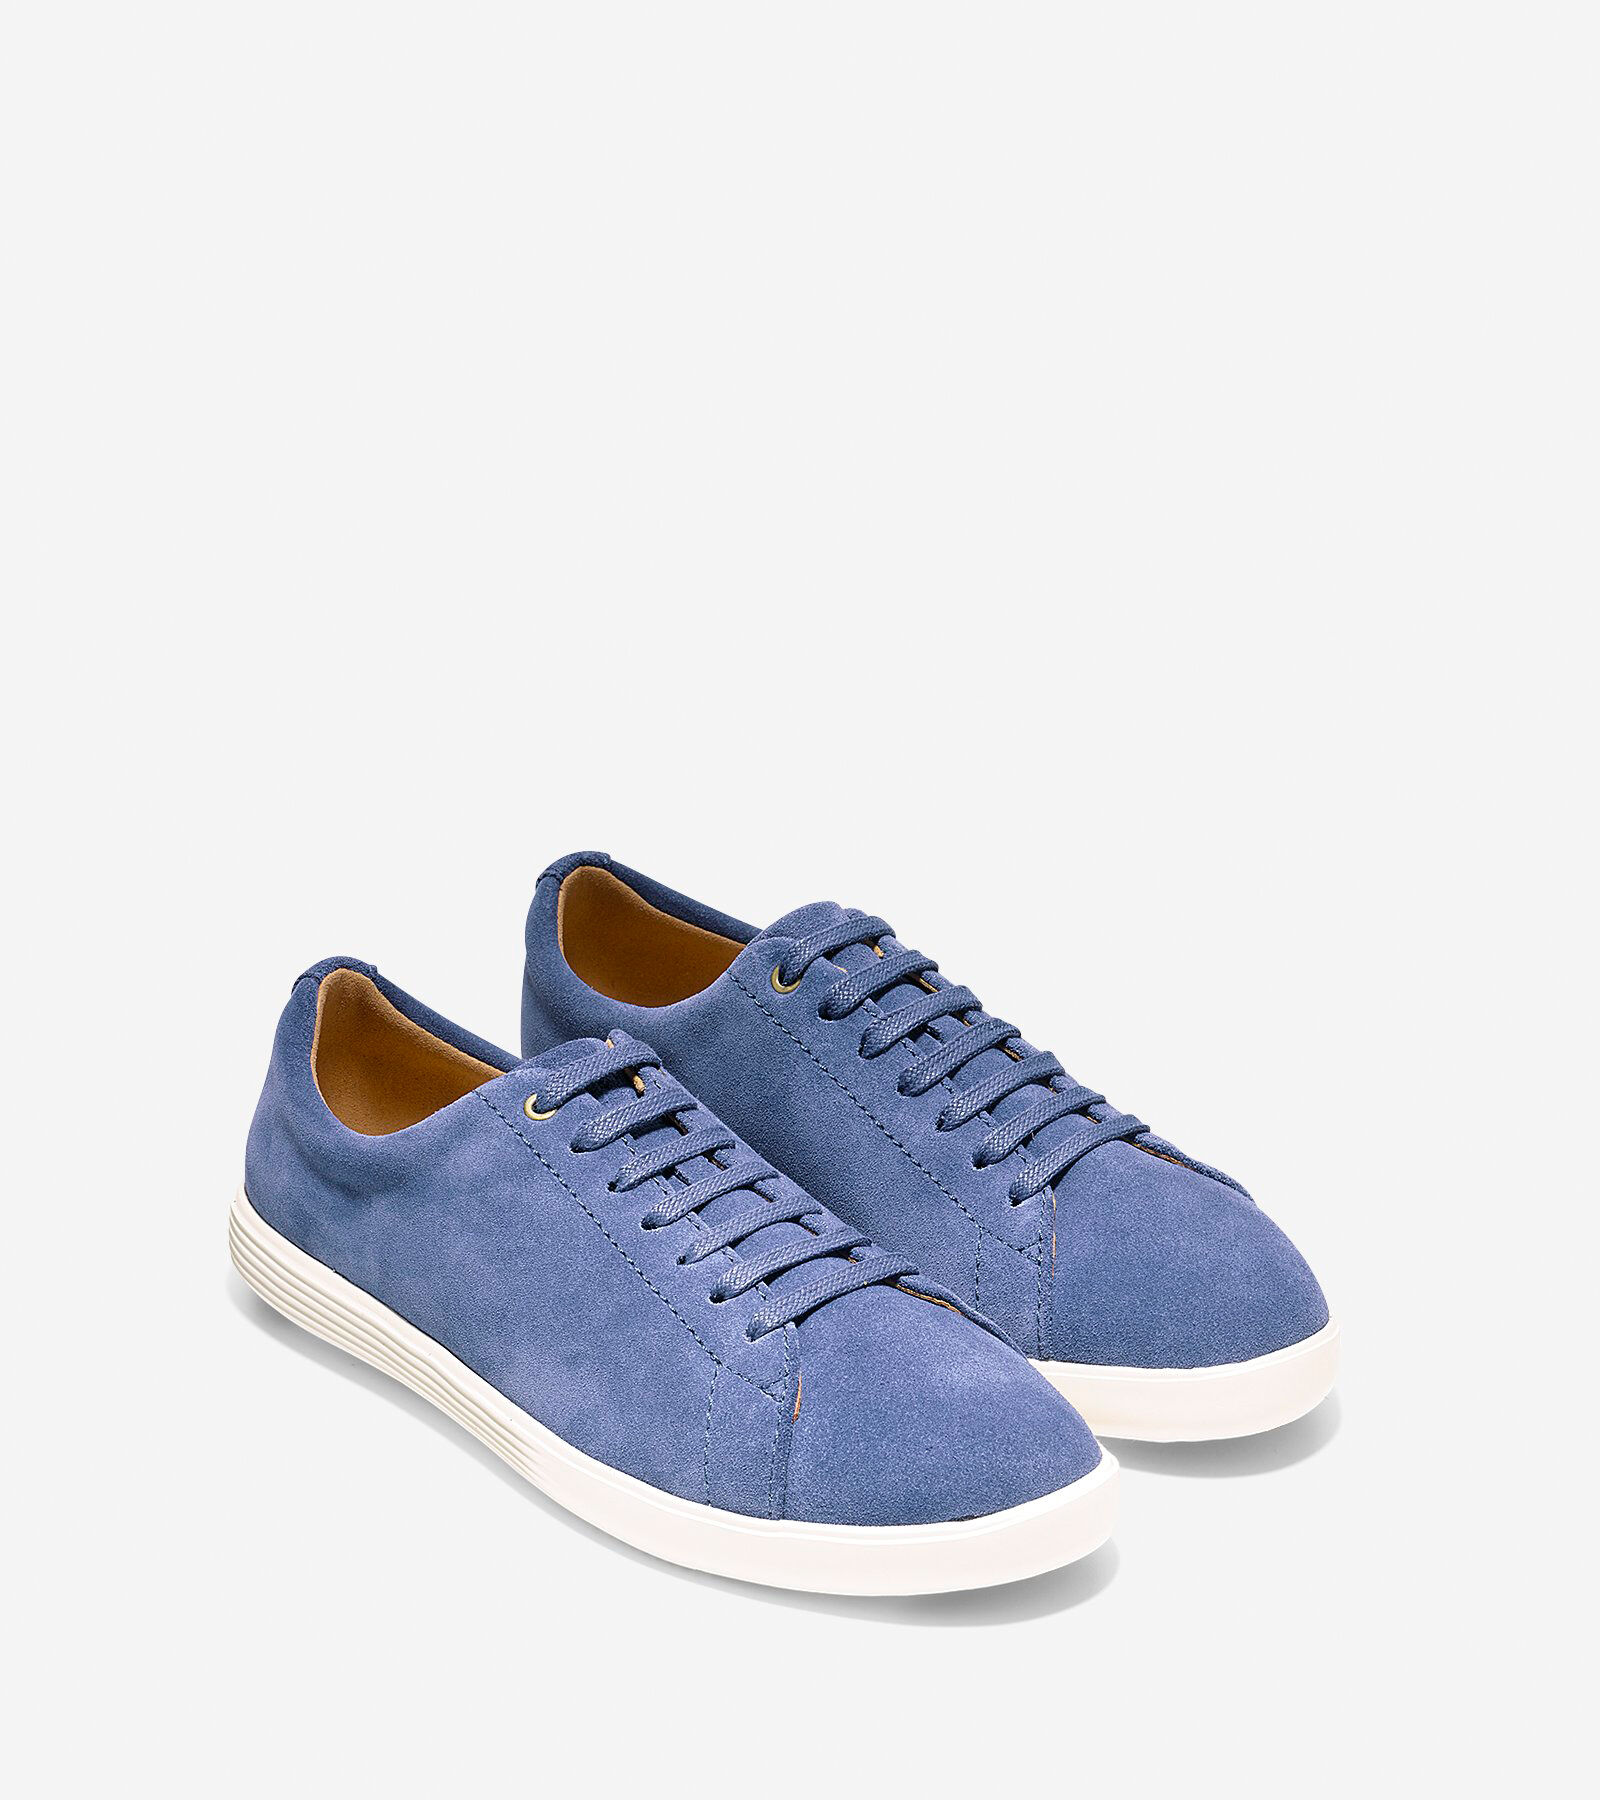 cole haan shoes women's grand cross court sneakers for pickl